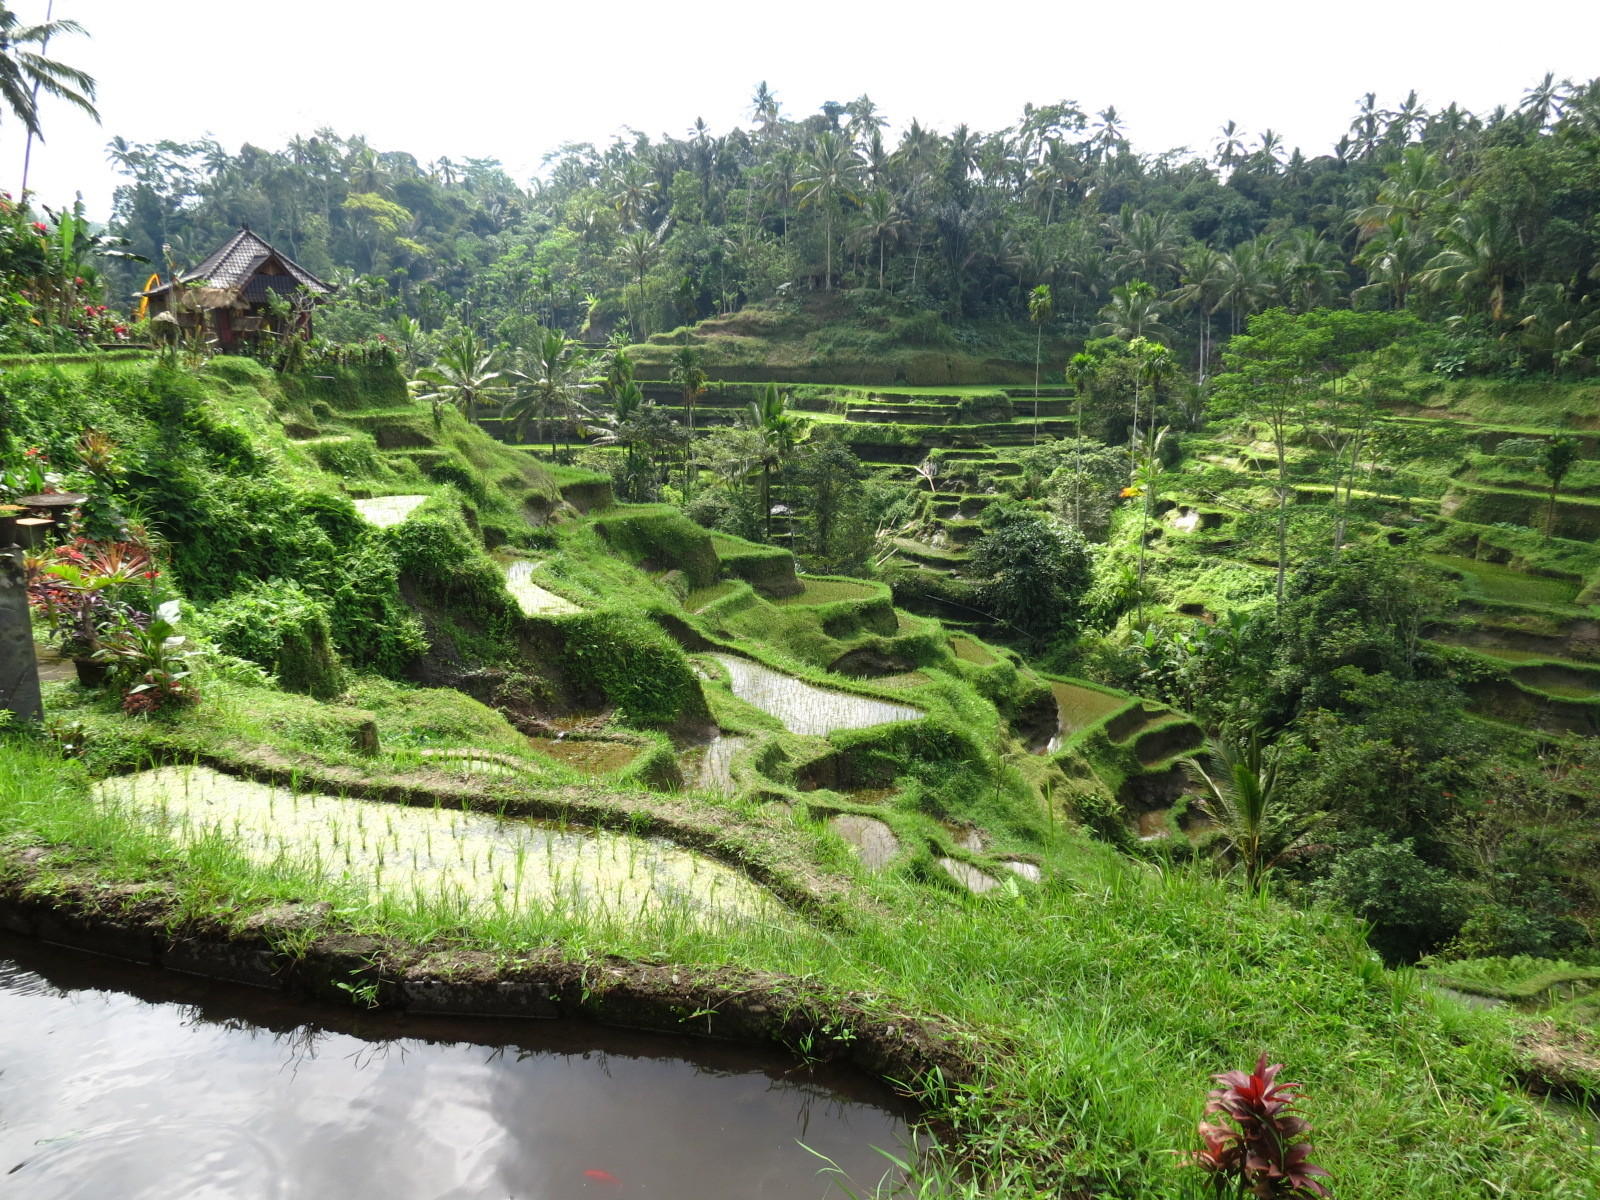 Sawah Tour : Ride in scooter through the ricefields ? It's possible with Sawah Tour !